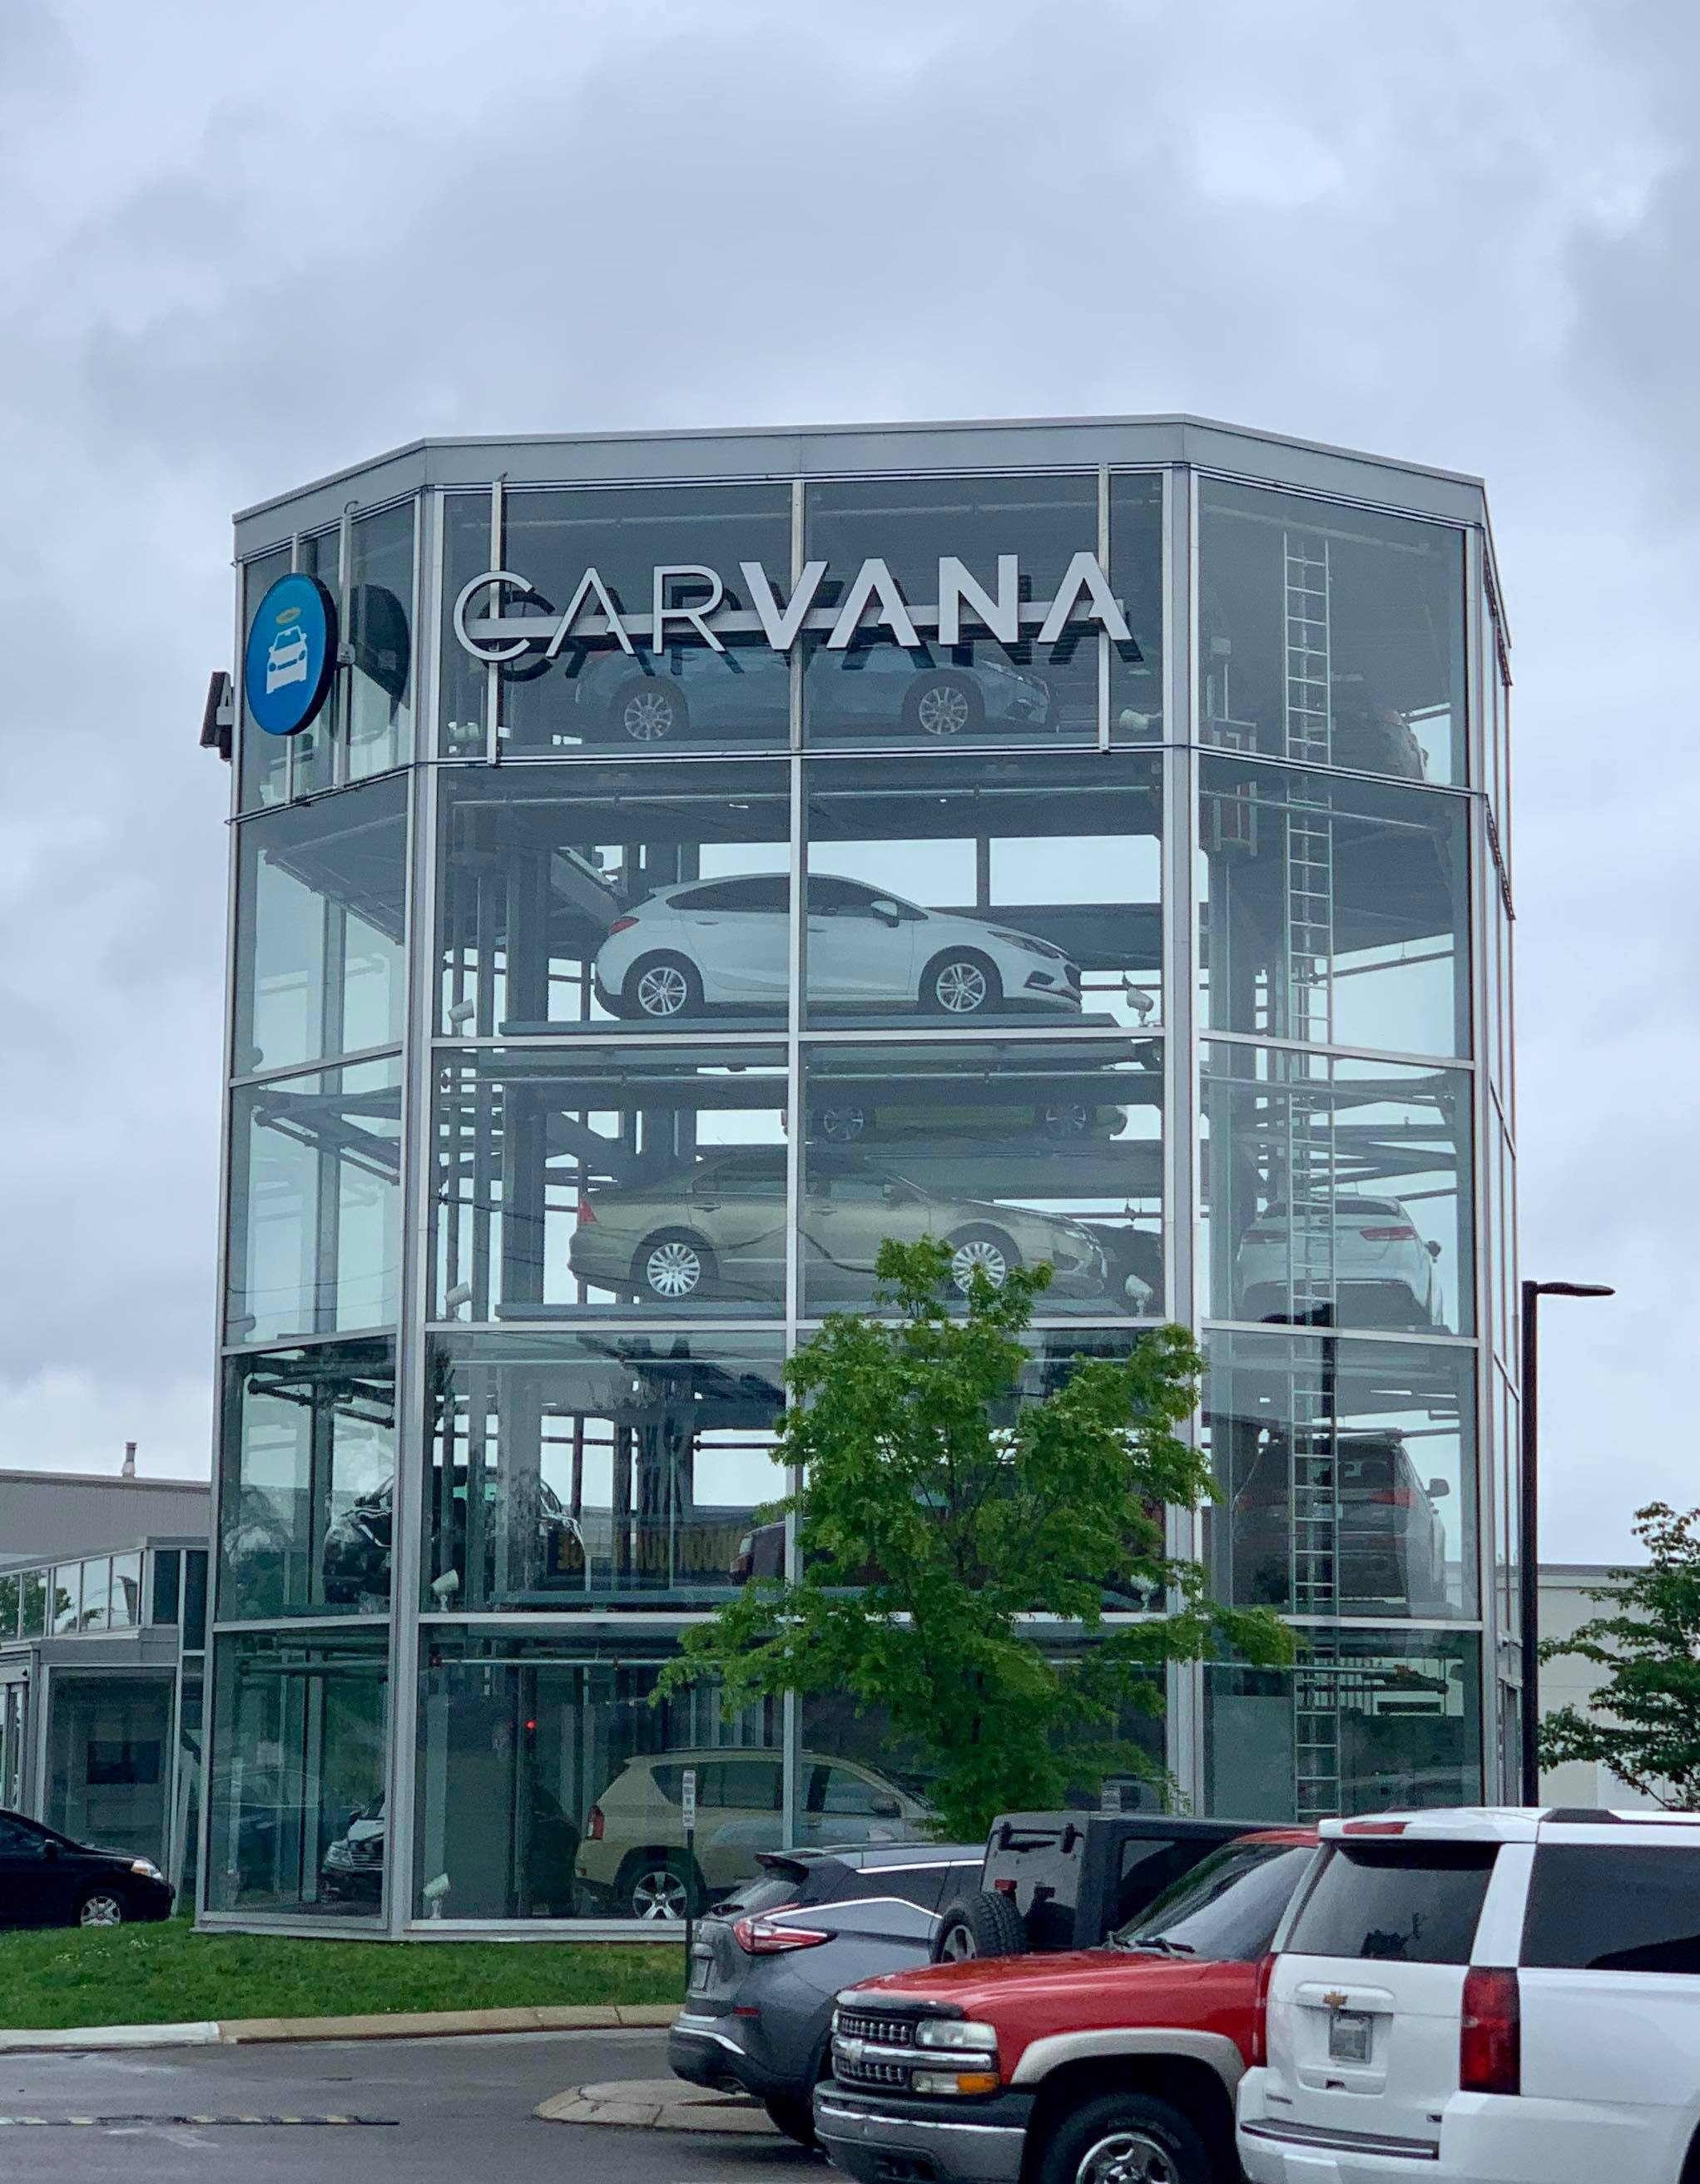 - Last but not least, I'll leave you with this whimsical discovery: Carvana. Apparently, the structure pictured is essentially a vending machine for cars. Maybe its common elsewhere, but I'd never seen one of those before.Oh Nashville, you never cease to surprise me.